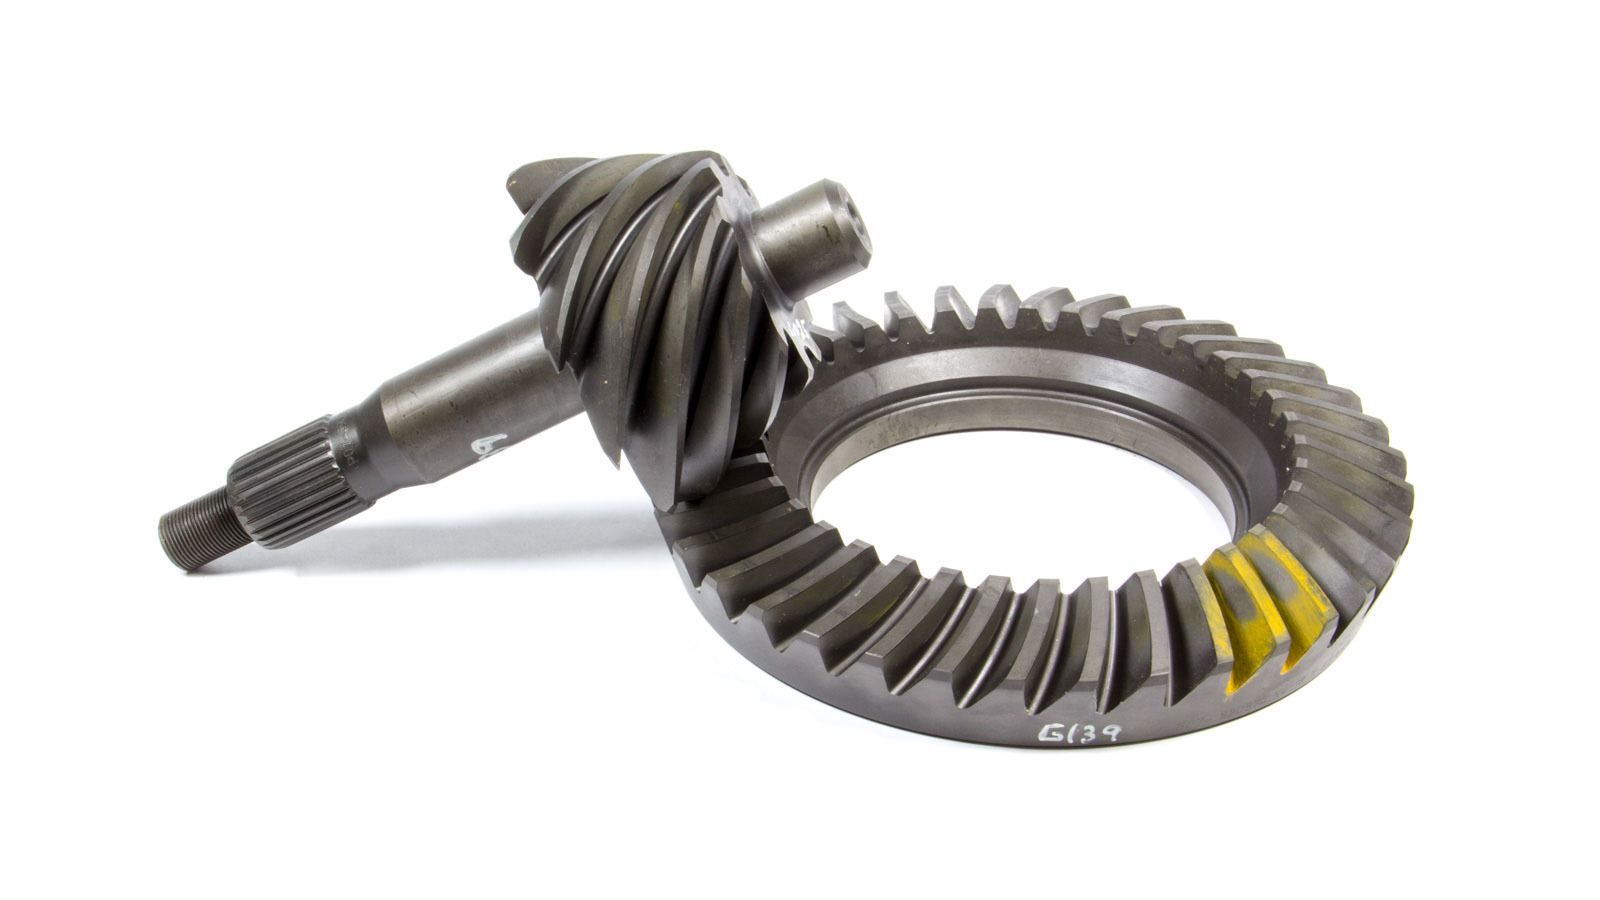 US Gear 07-890370 Ring and Pinion, 3.70 Ratio, 28 Spline Pinion, Ford 9 in, Kit